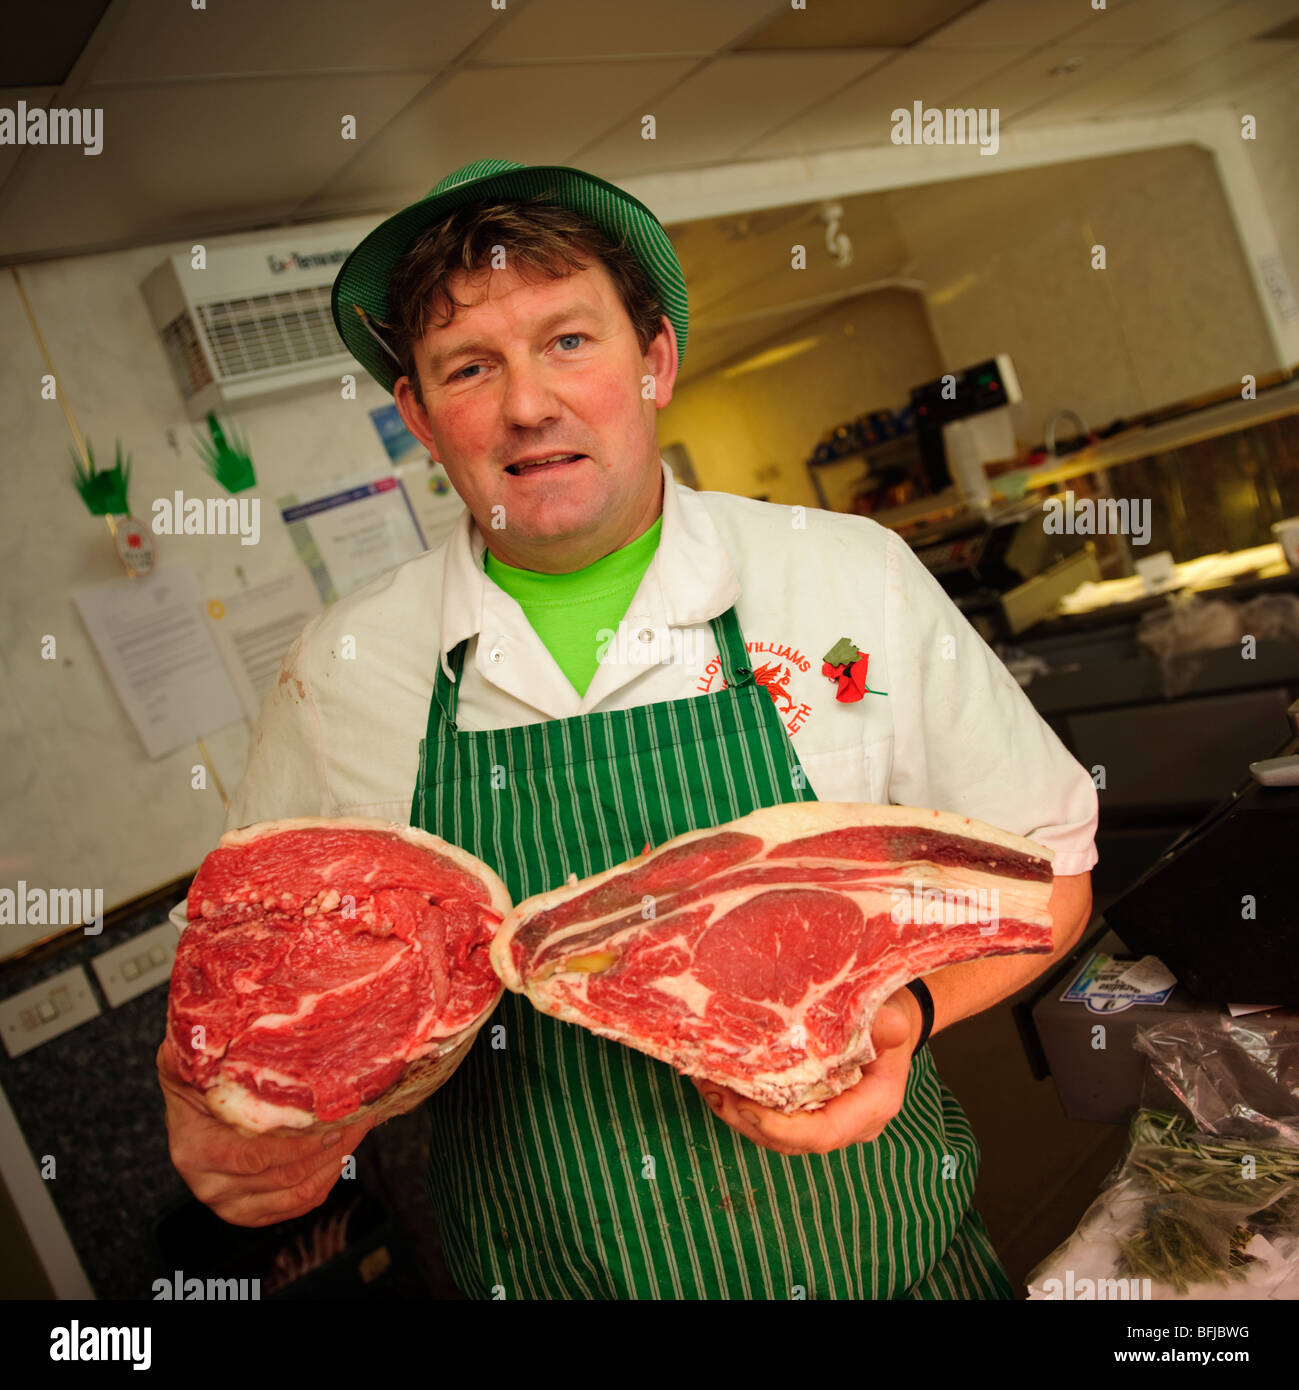 William Lloyd Williams MBE, butcher, Machynlleth , Powys Wales UK, holding joints of prime locally produced beef - Stock Image